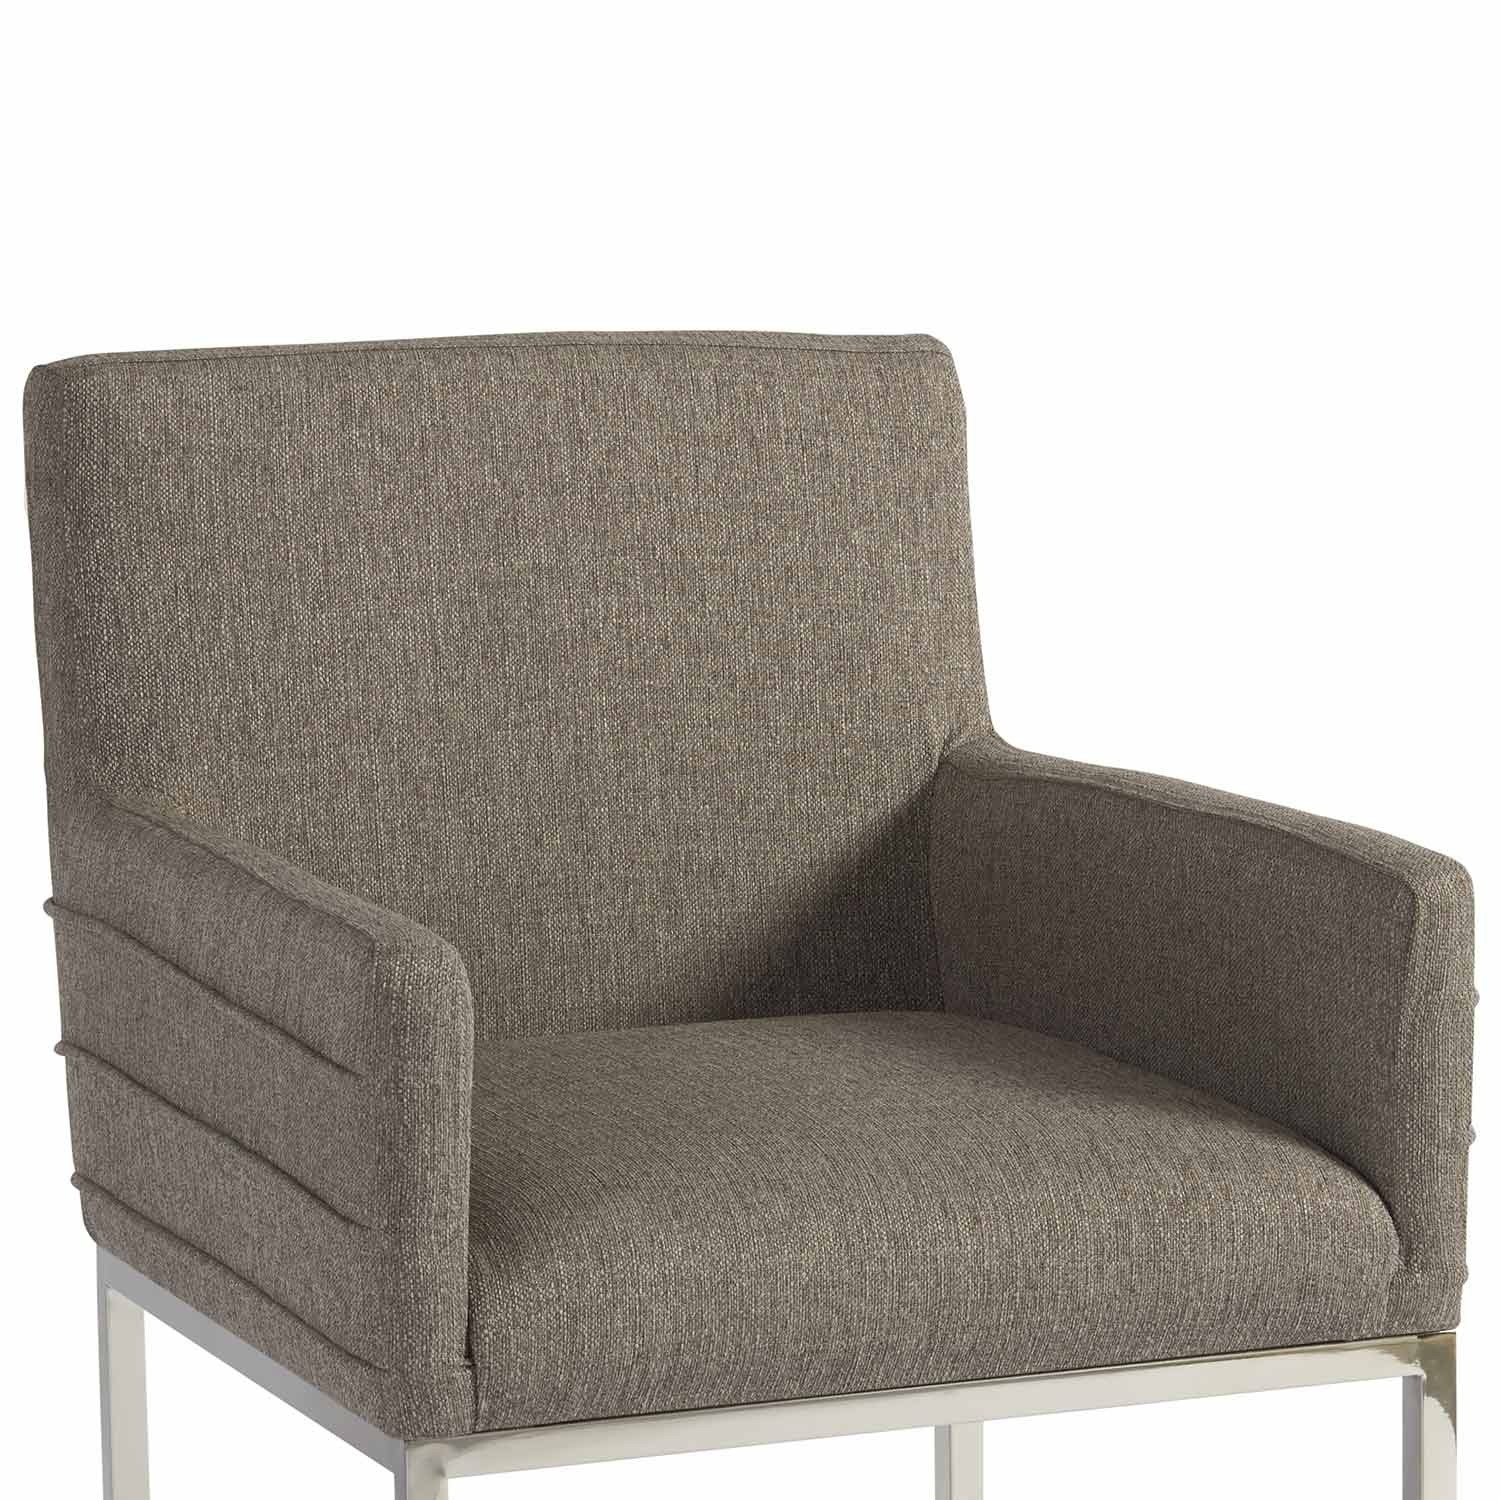 Inspiration about Zephyr Cooper Stainless Steel & Upholstered Arm Chair In Dark Gray Intended For Most Recent Cooper Upholstered Side Chairs (#13 of 20)